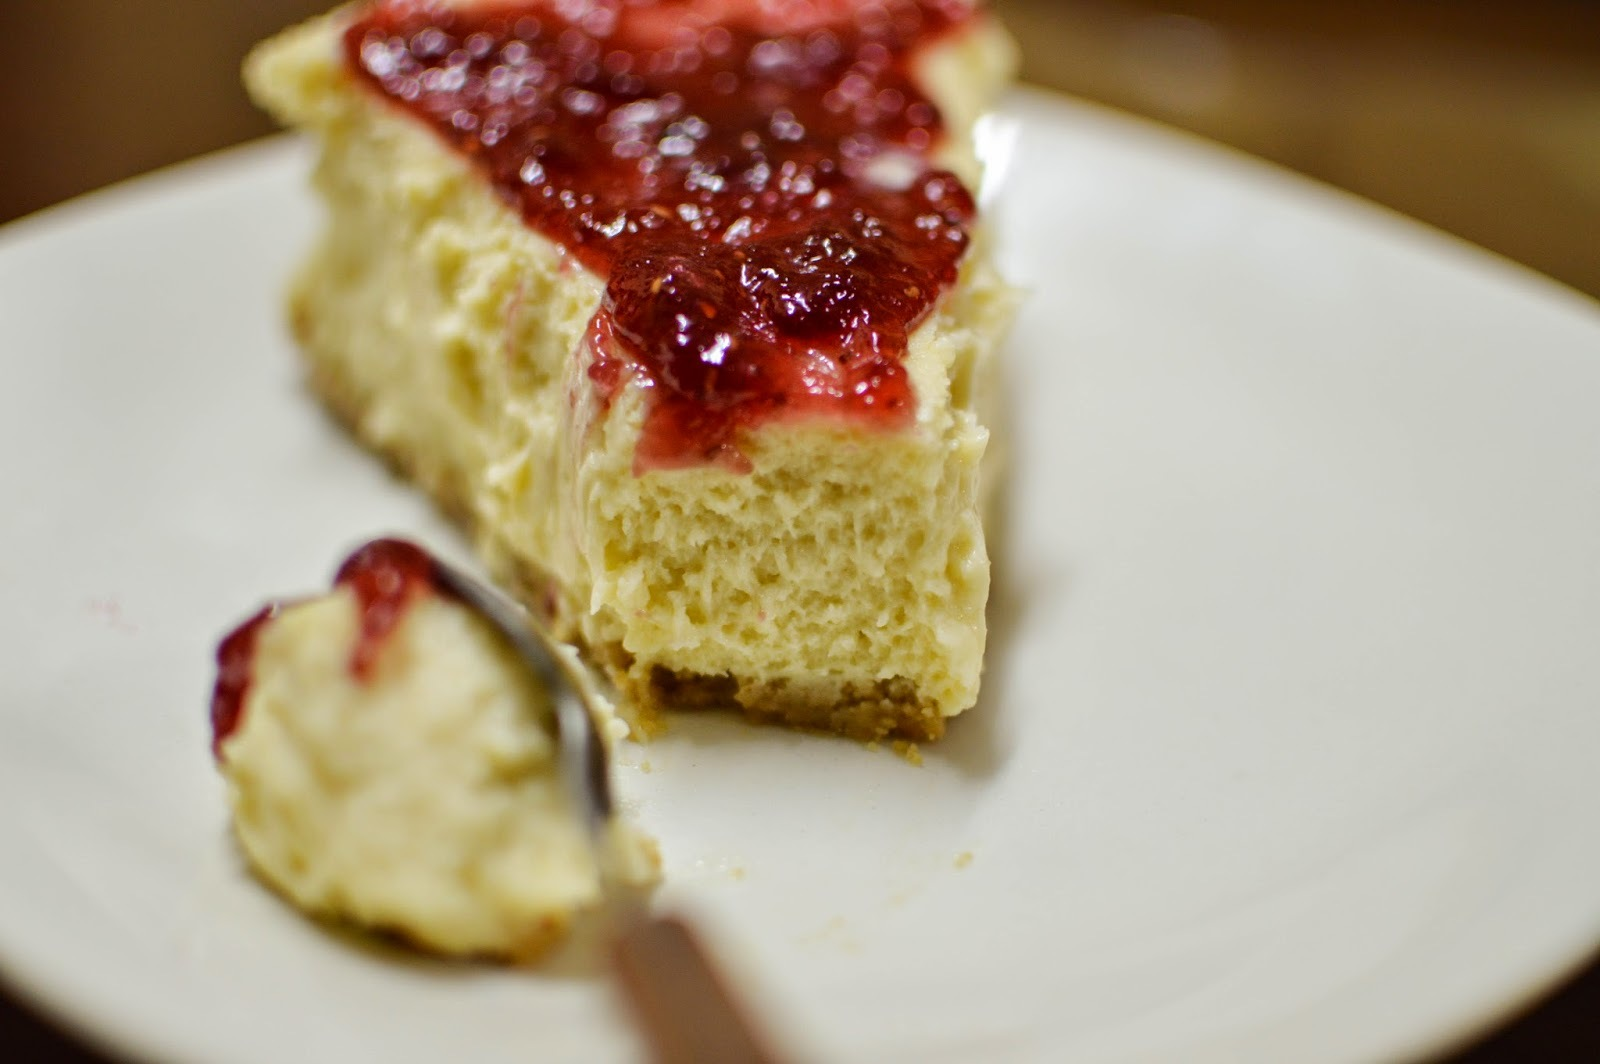 New York Cheesecake | Gluten free